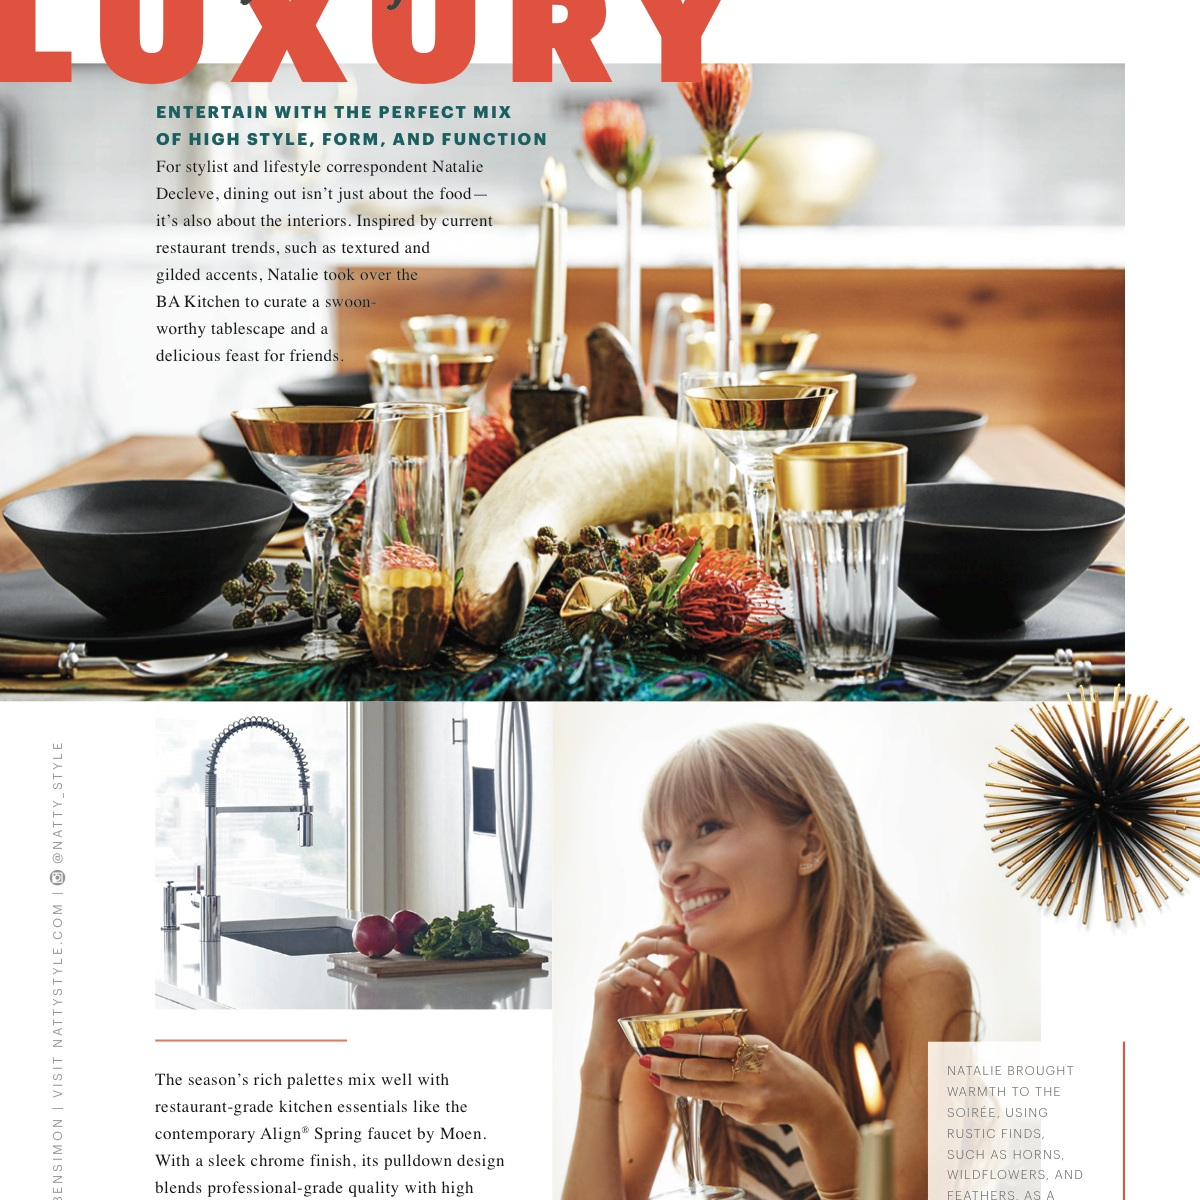 BON APPETIT  Bringing the outside in, for a luxurious tablescape to wow the senses.